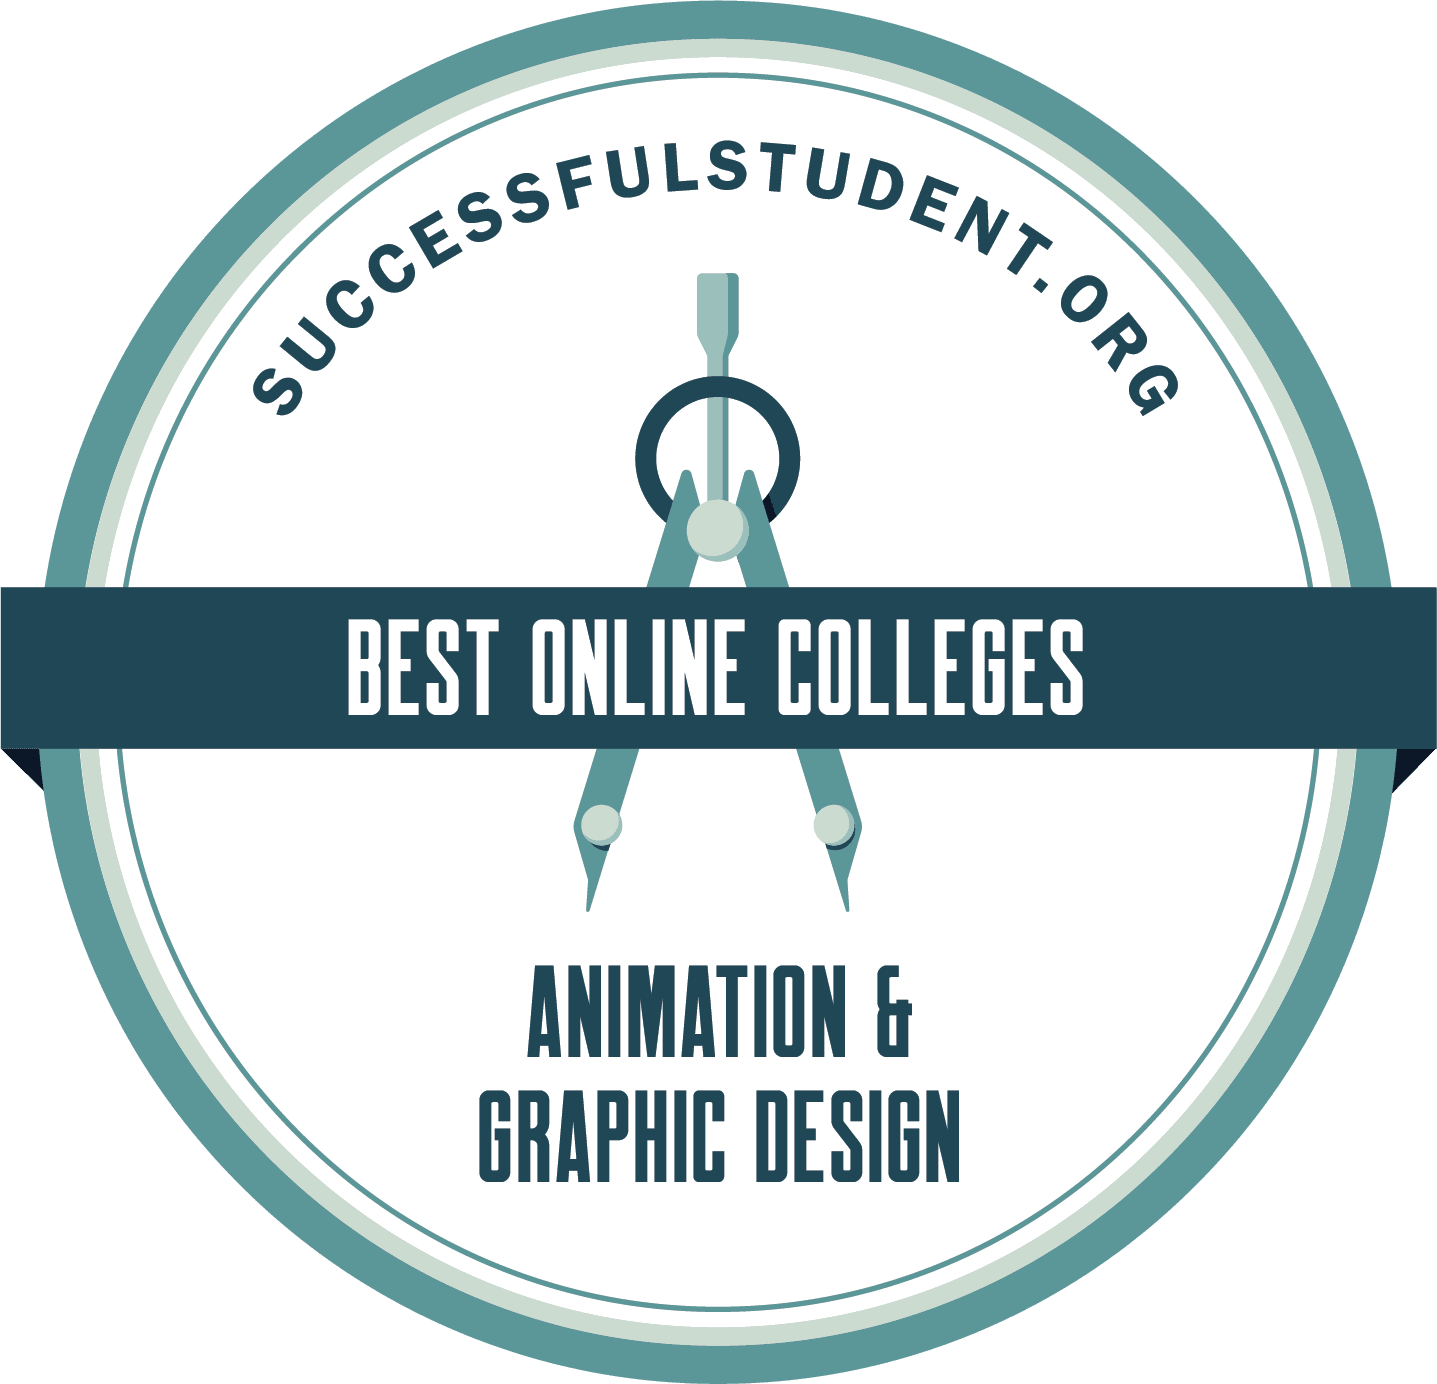 The 15 Best Online Animation and Graphic Design Colleges's Badge